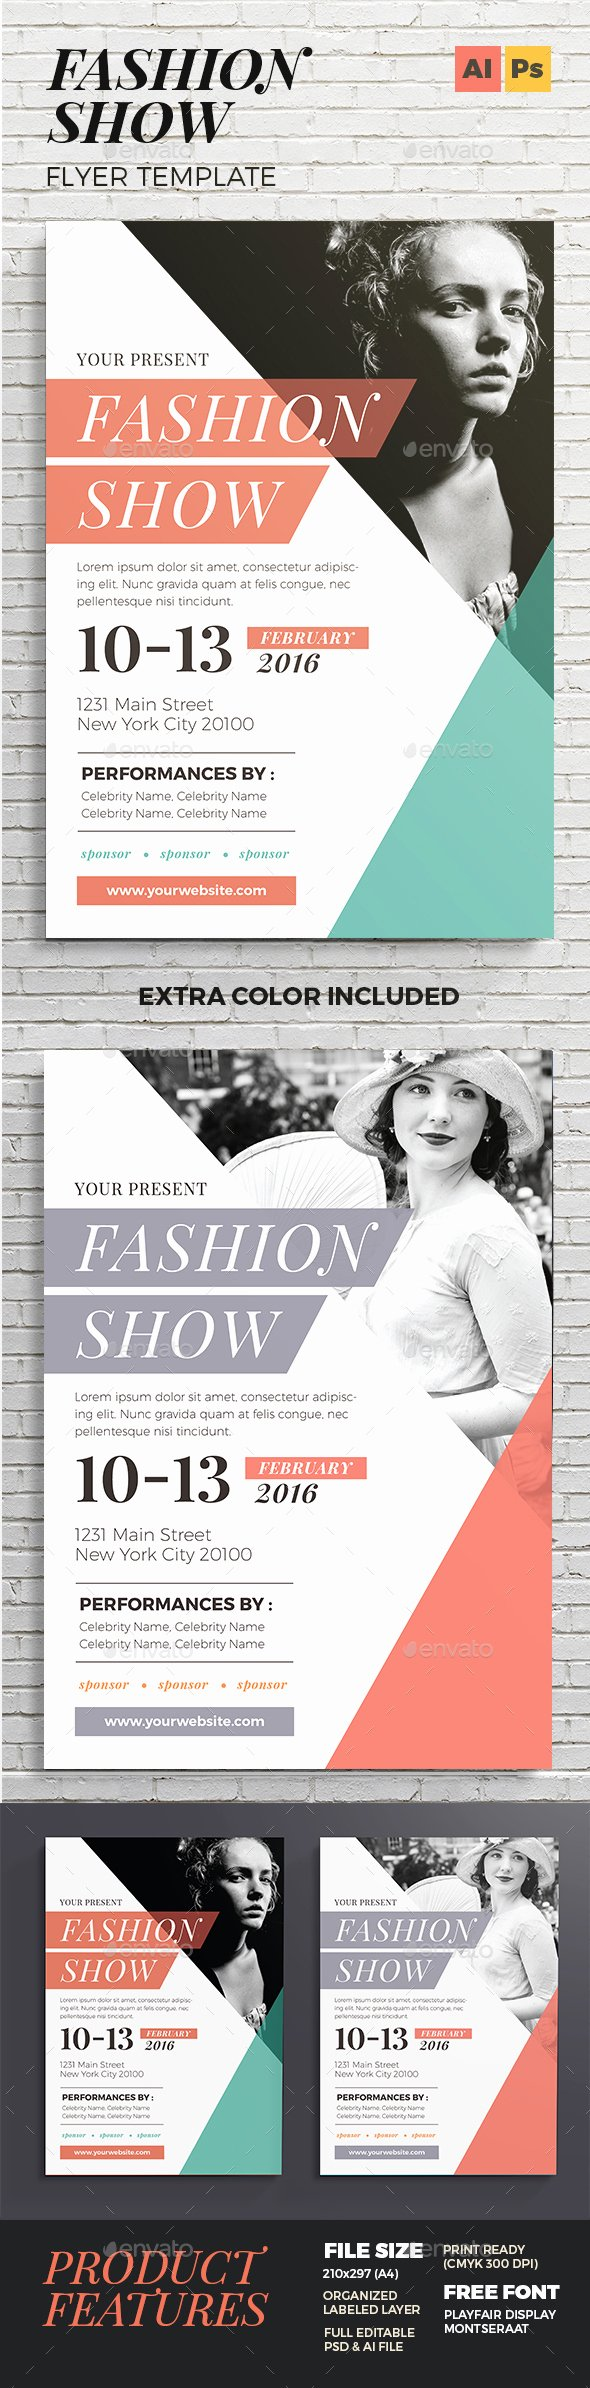 Fashion Show Program Templates Awesome Fashion Show Flyer by Vynetta